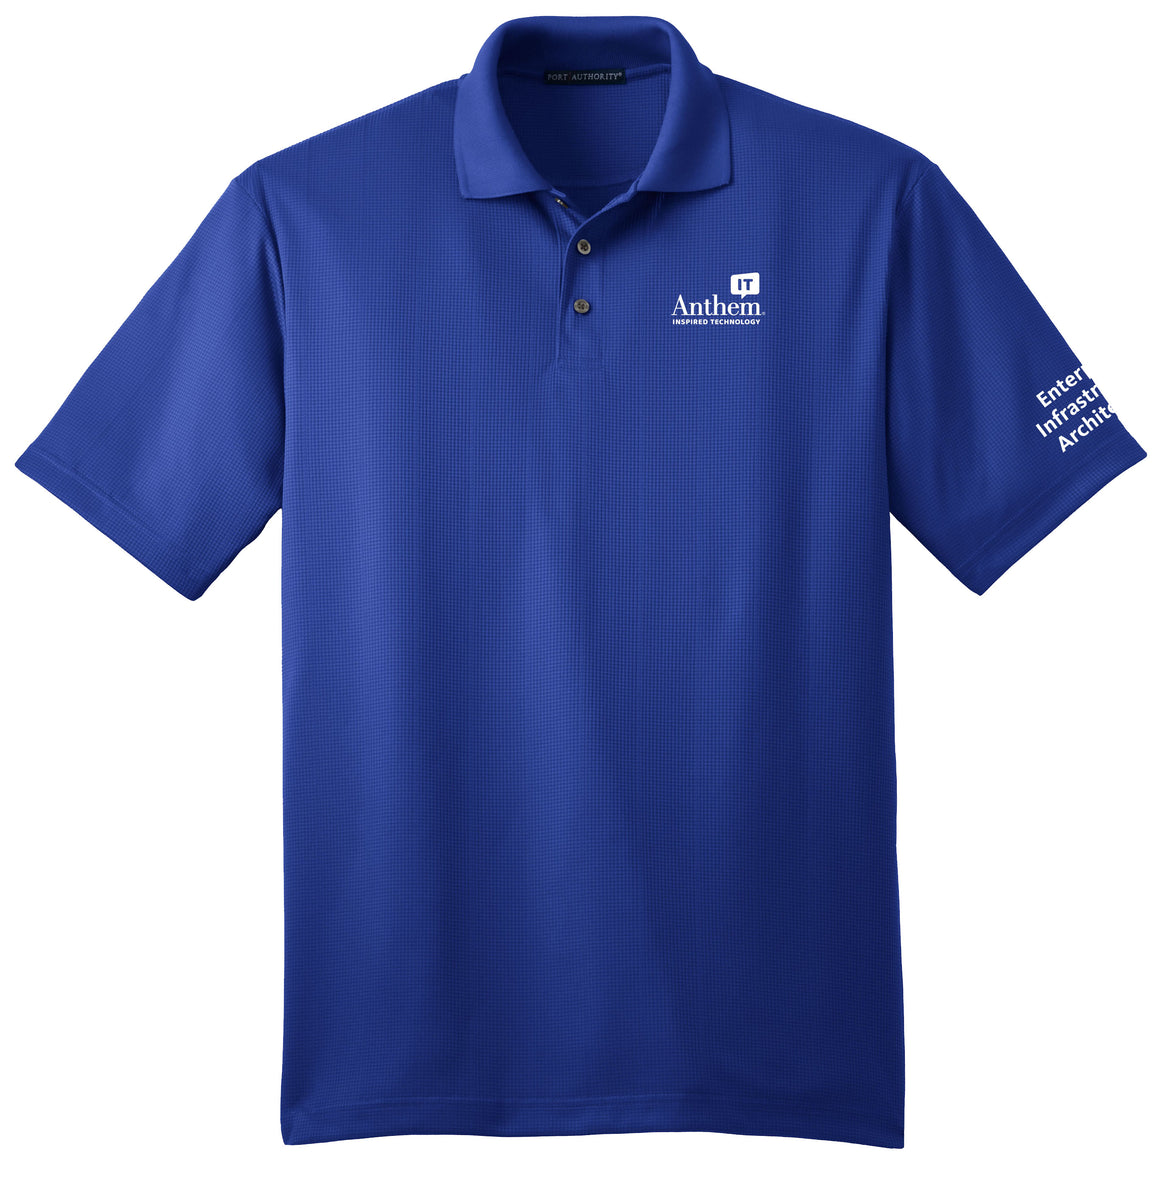 Men's Port Authority Performance Fine Jacquard Polo Shirt - EIA